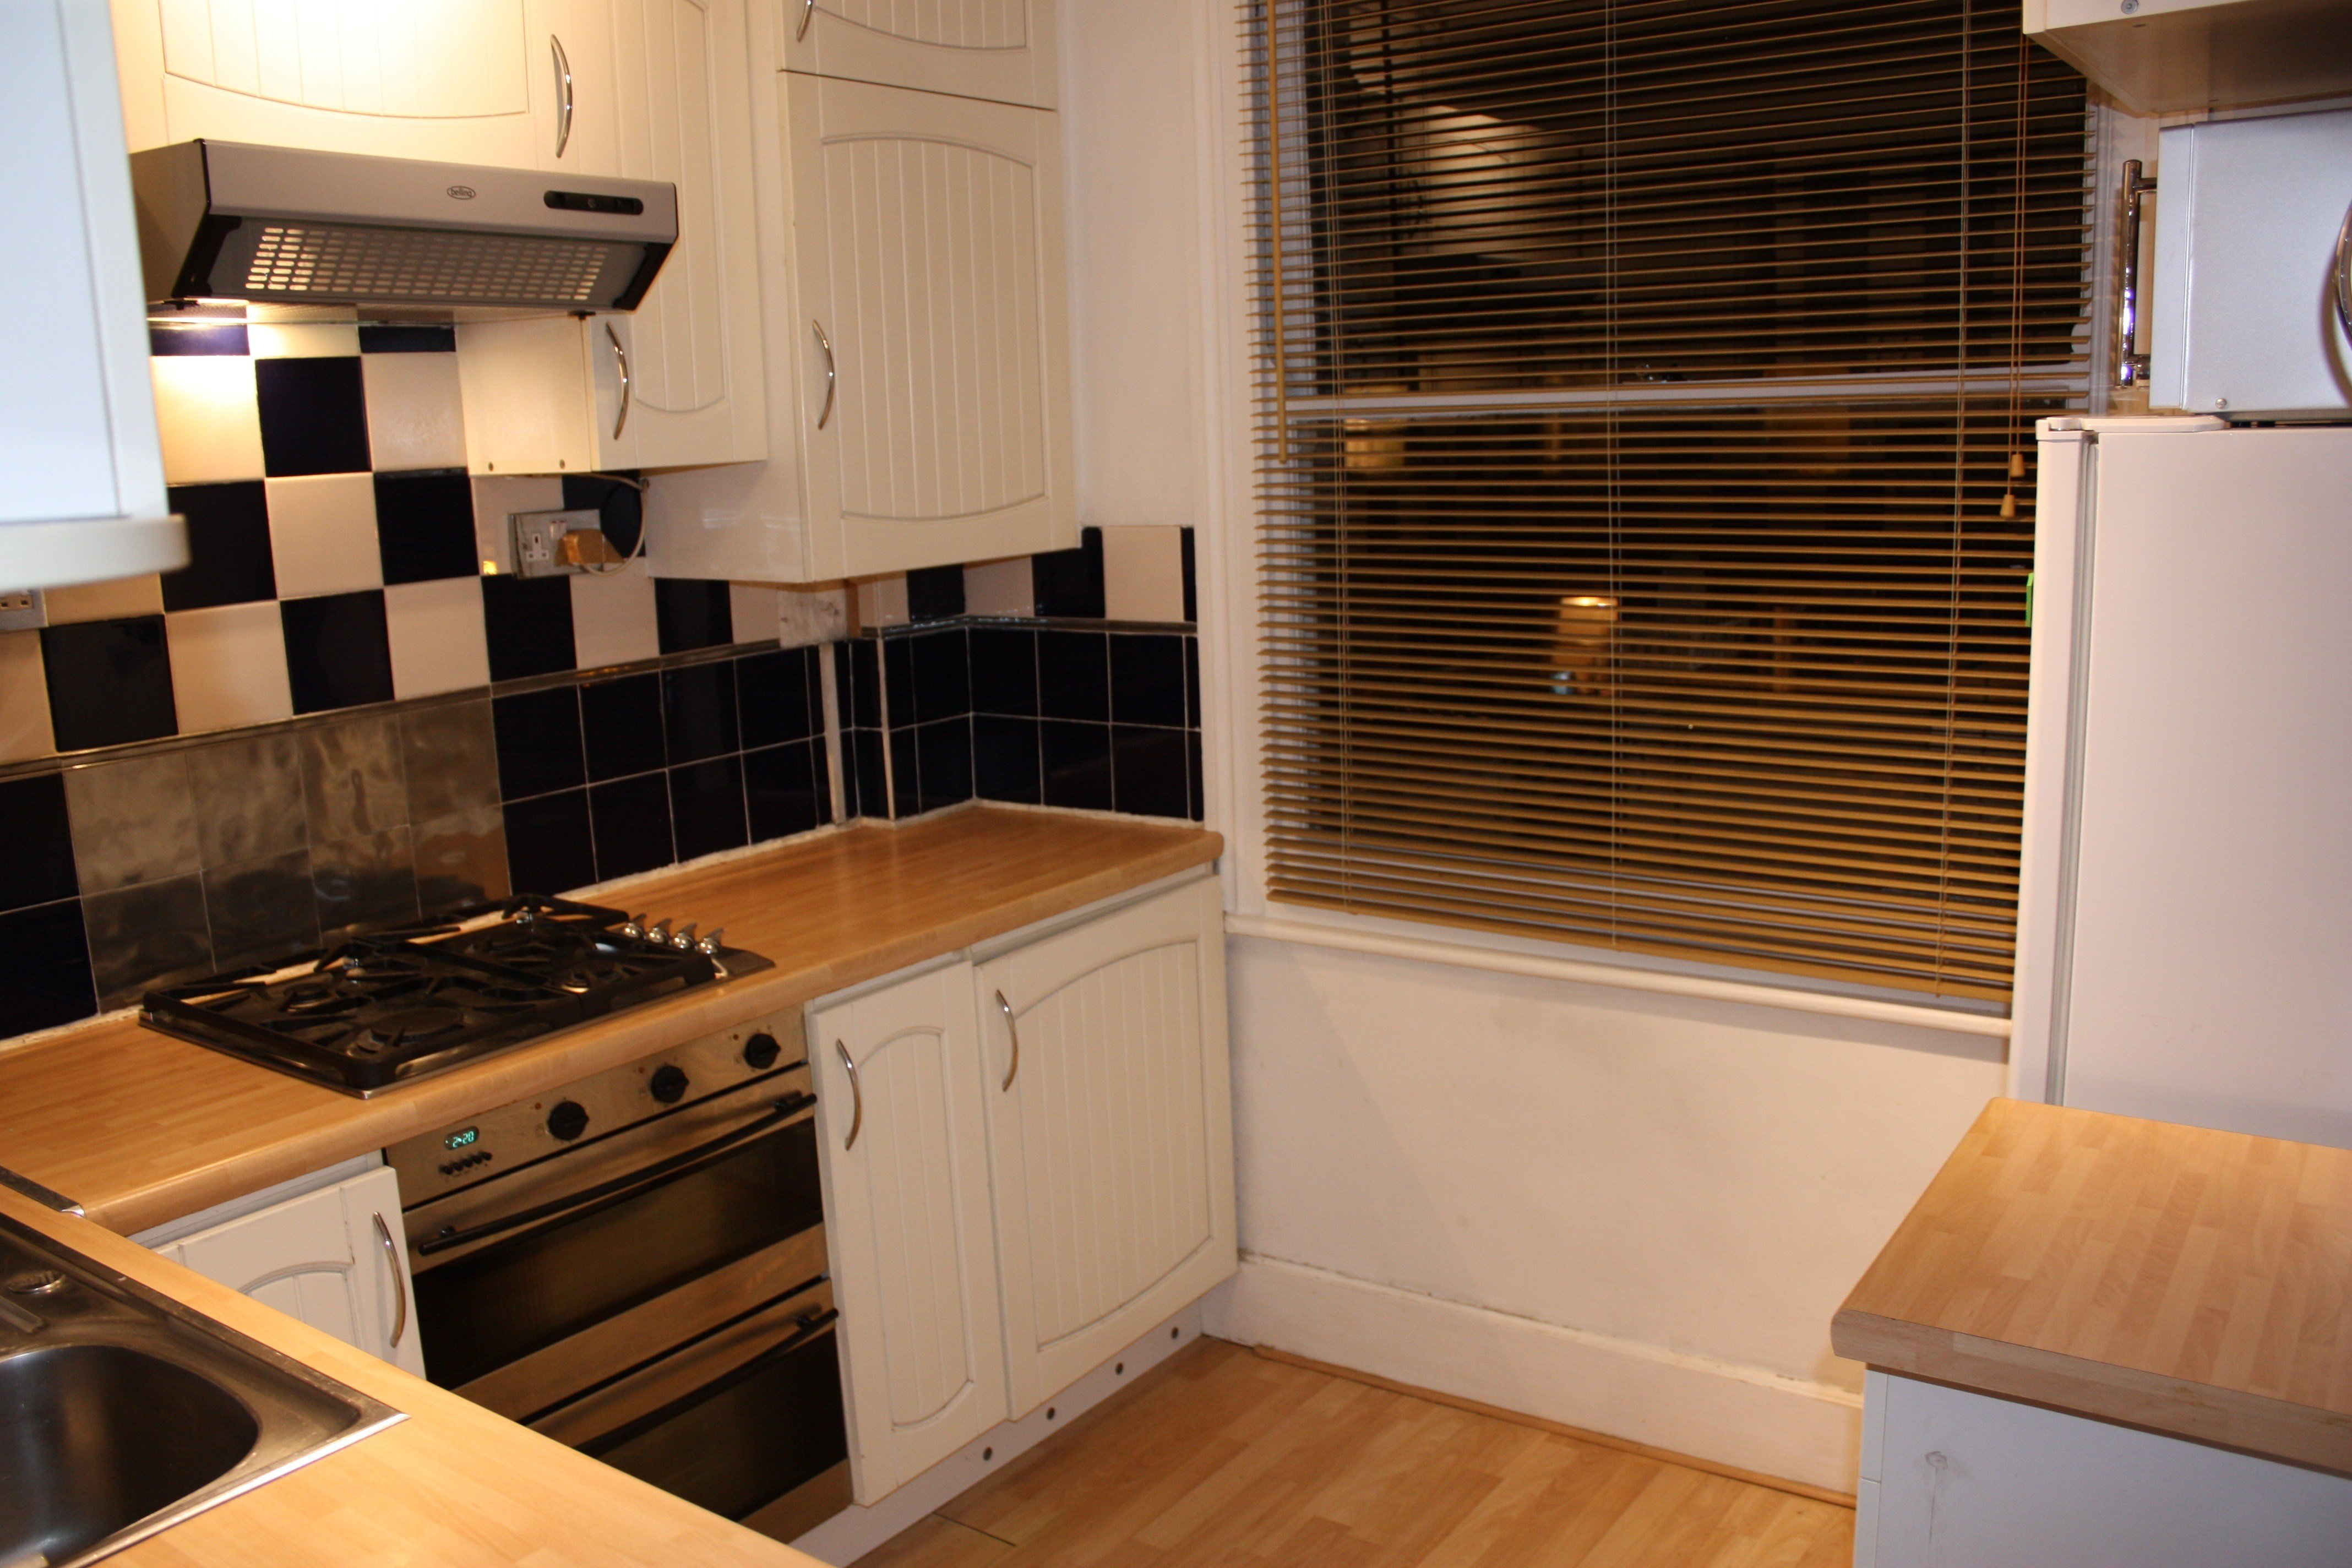 Best 2 Bed Flat To Rent Alexandra Grove Finsbury Park N4 2Lq With Pictures